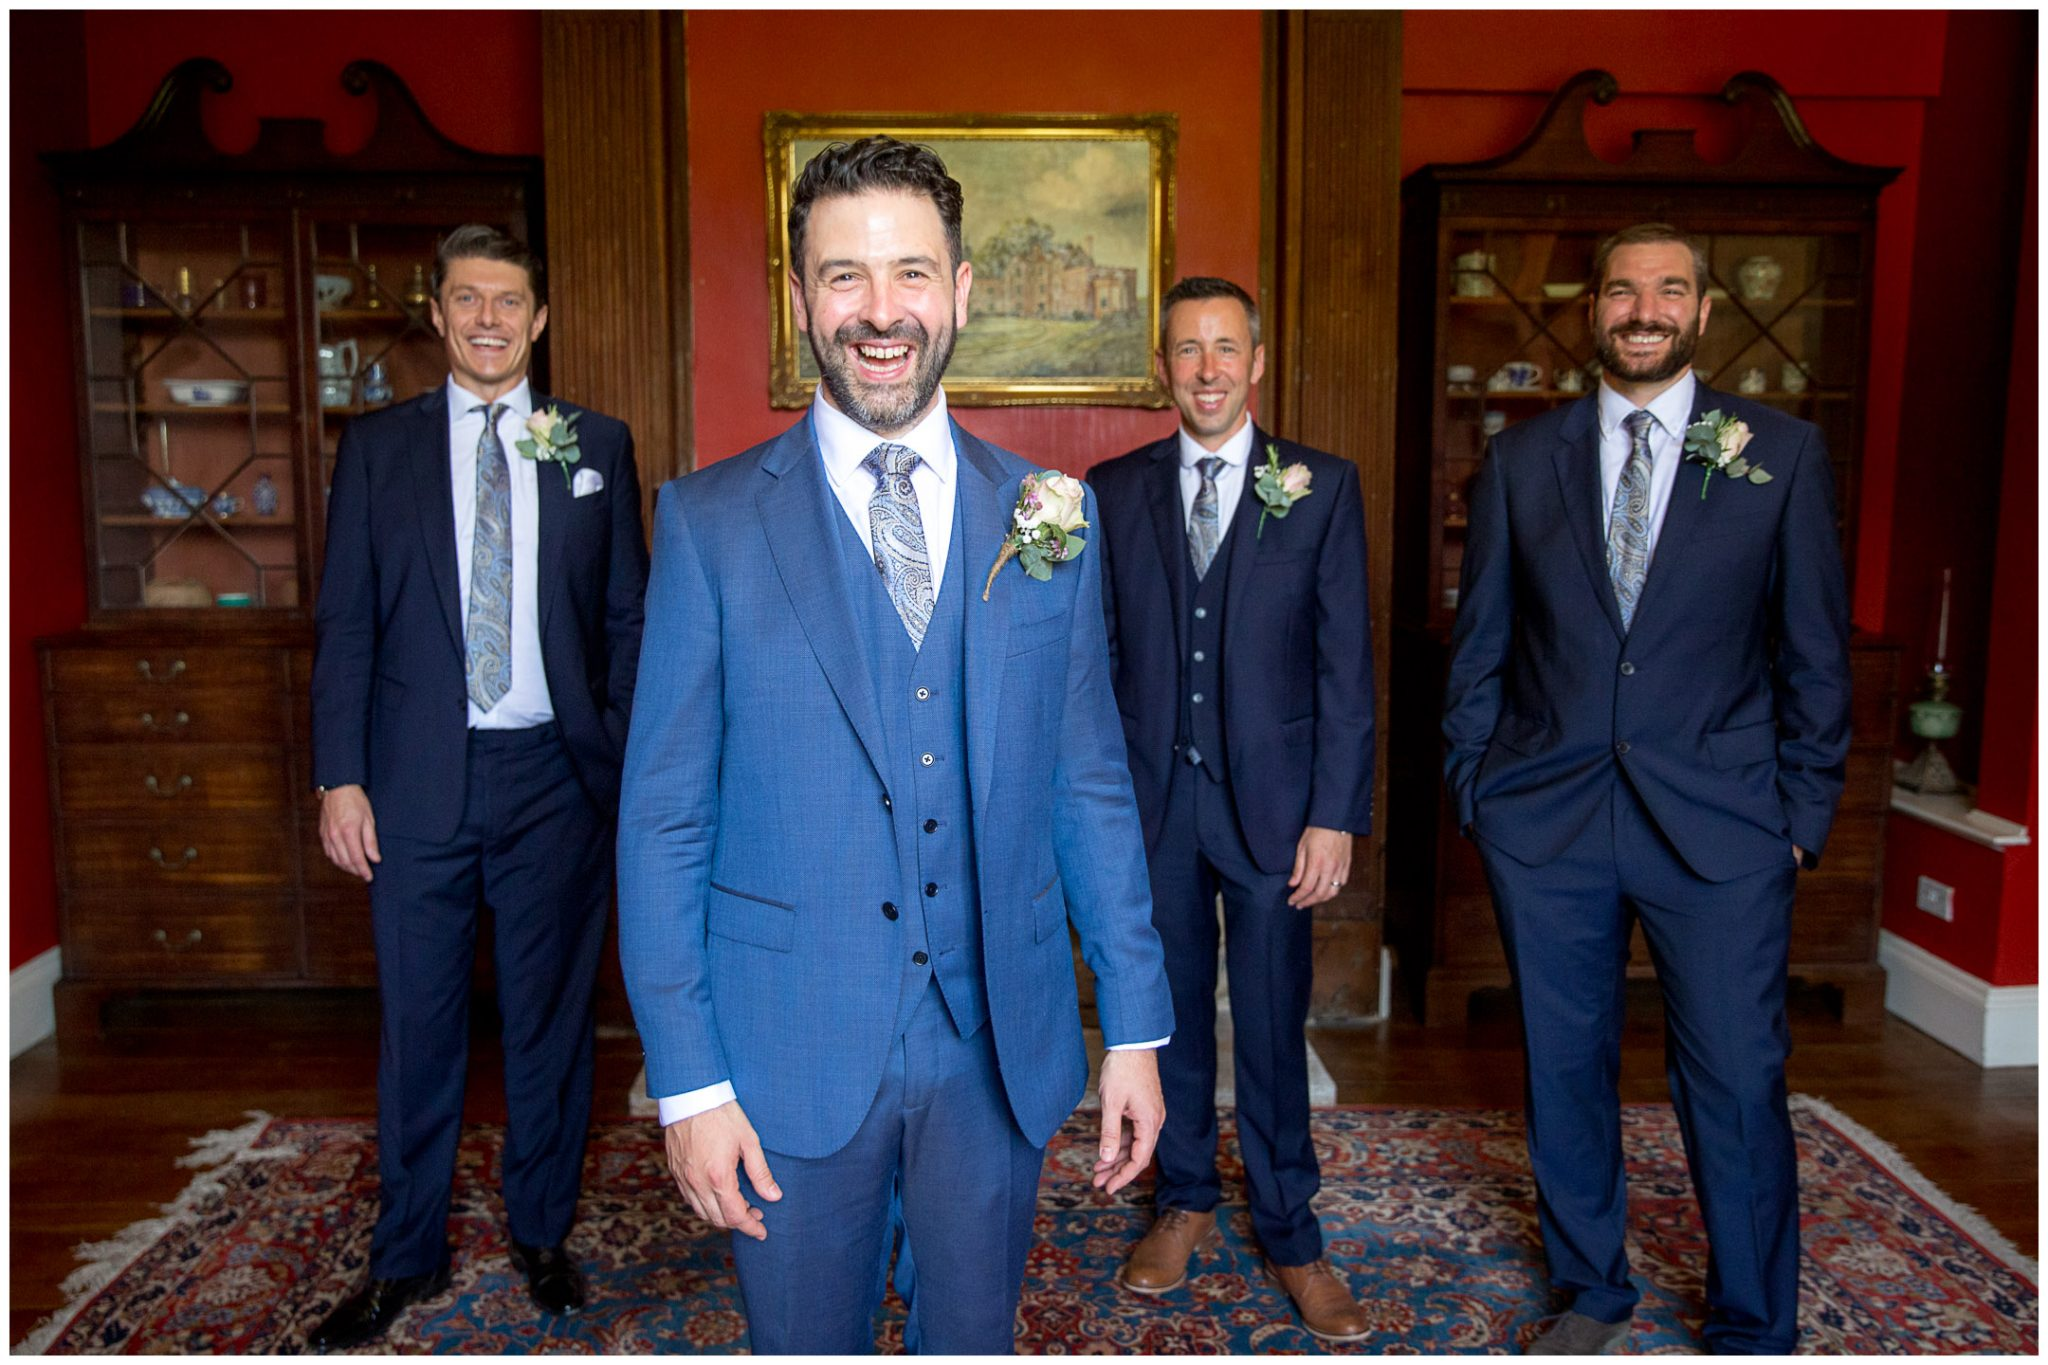 Groom, best man and ushers portrait before Newhouse Estate wedding ceremony